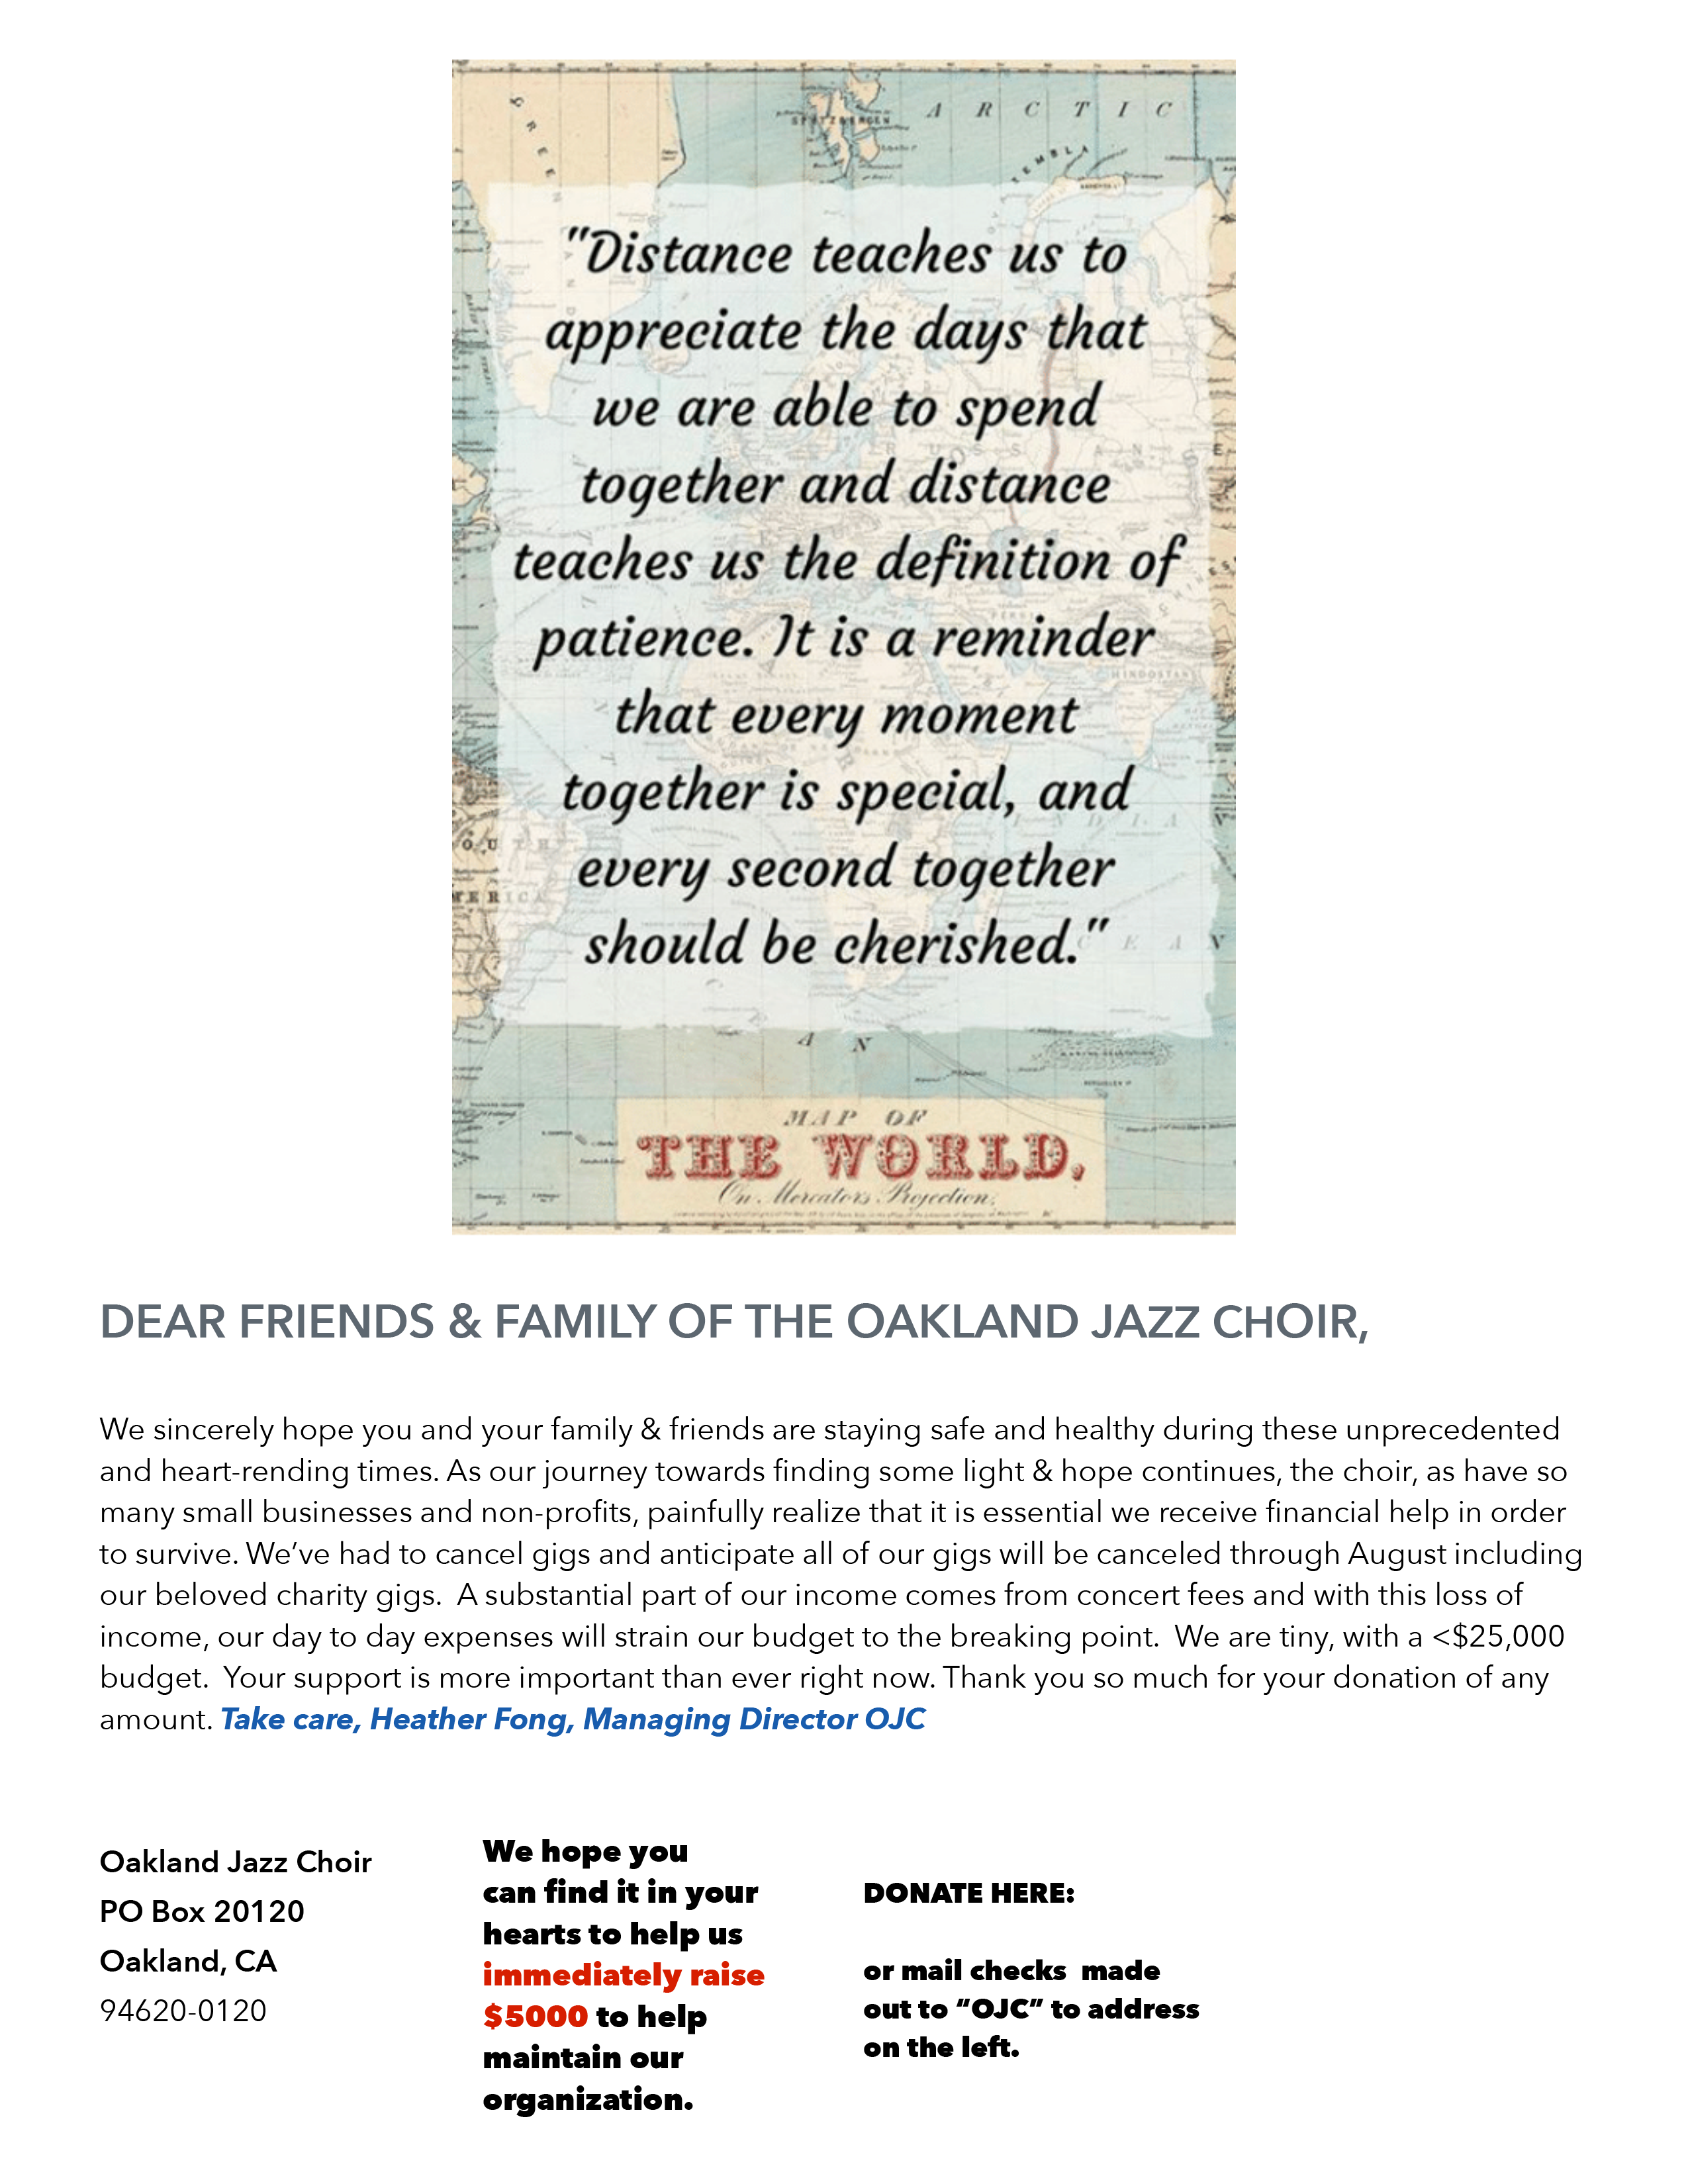 Please Donate and Support the Oakland Jazz Choir!